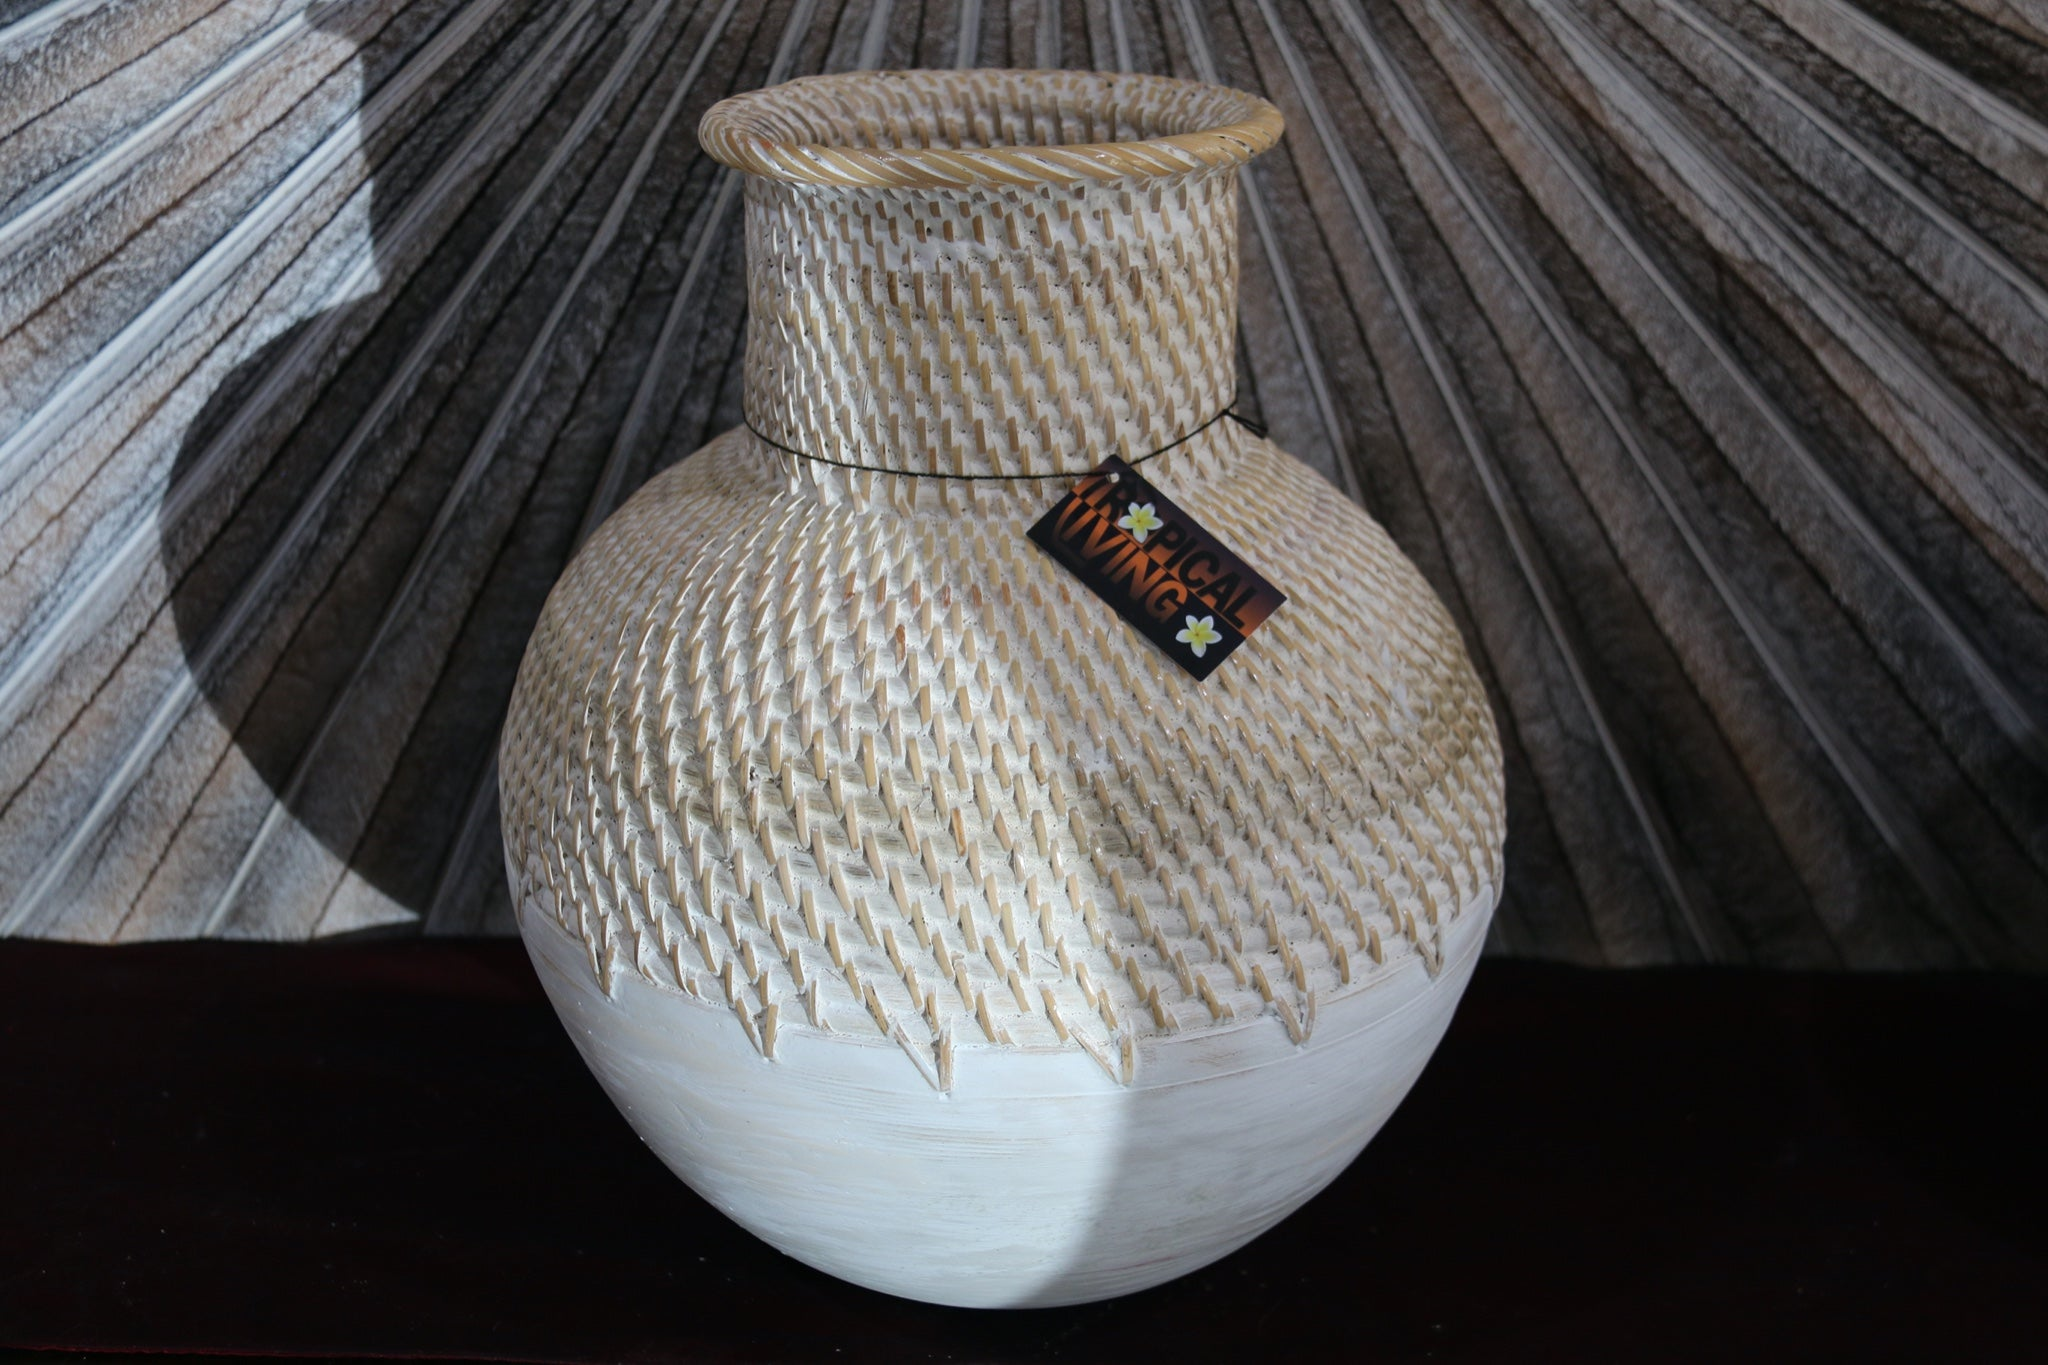 NEW BALINESE HAND CRAFTED WOOD/RATTAN COMBO BALL VASE - GORGEOUS!!